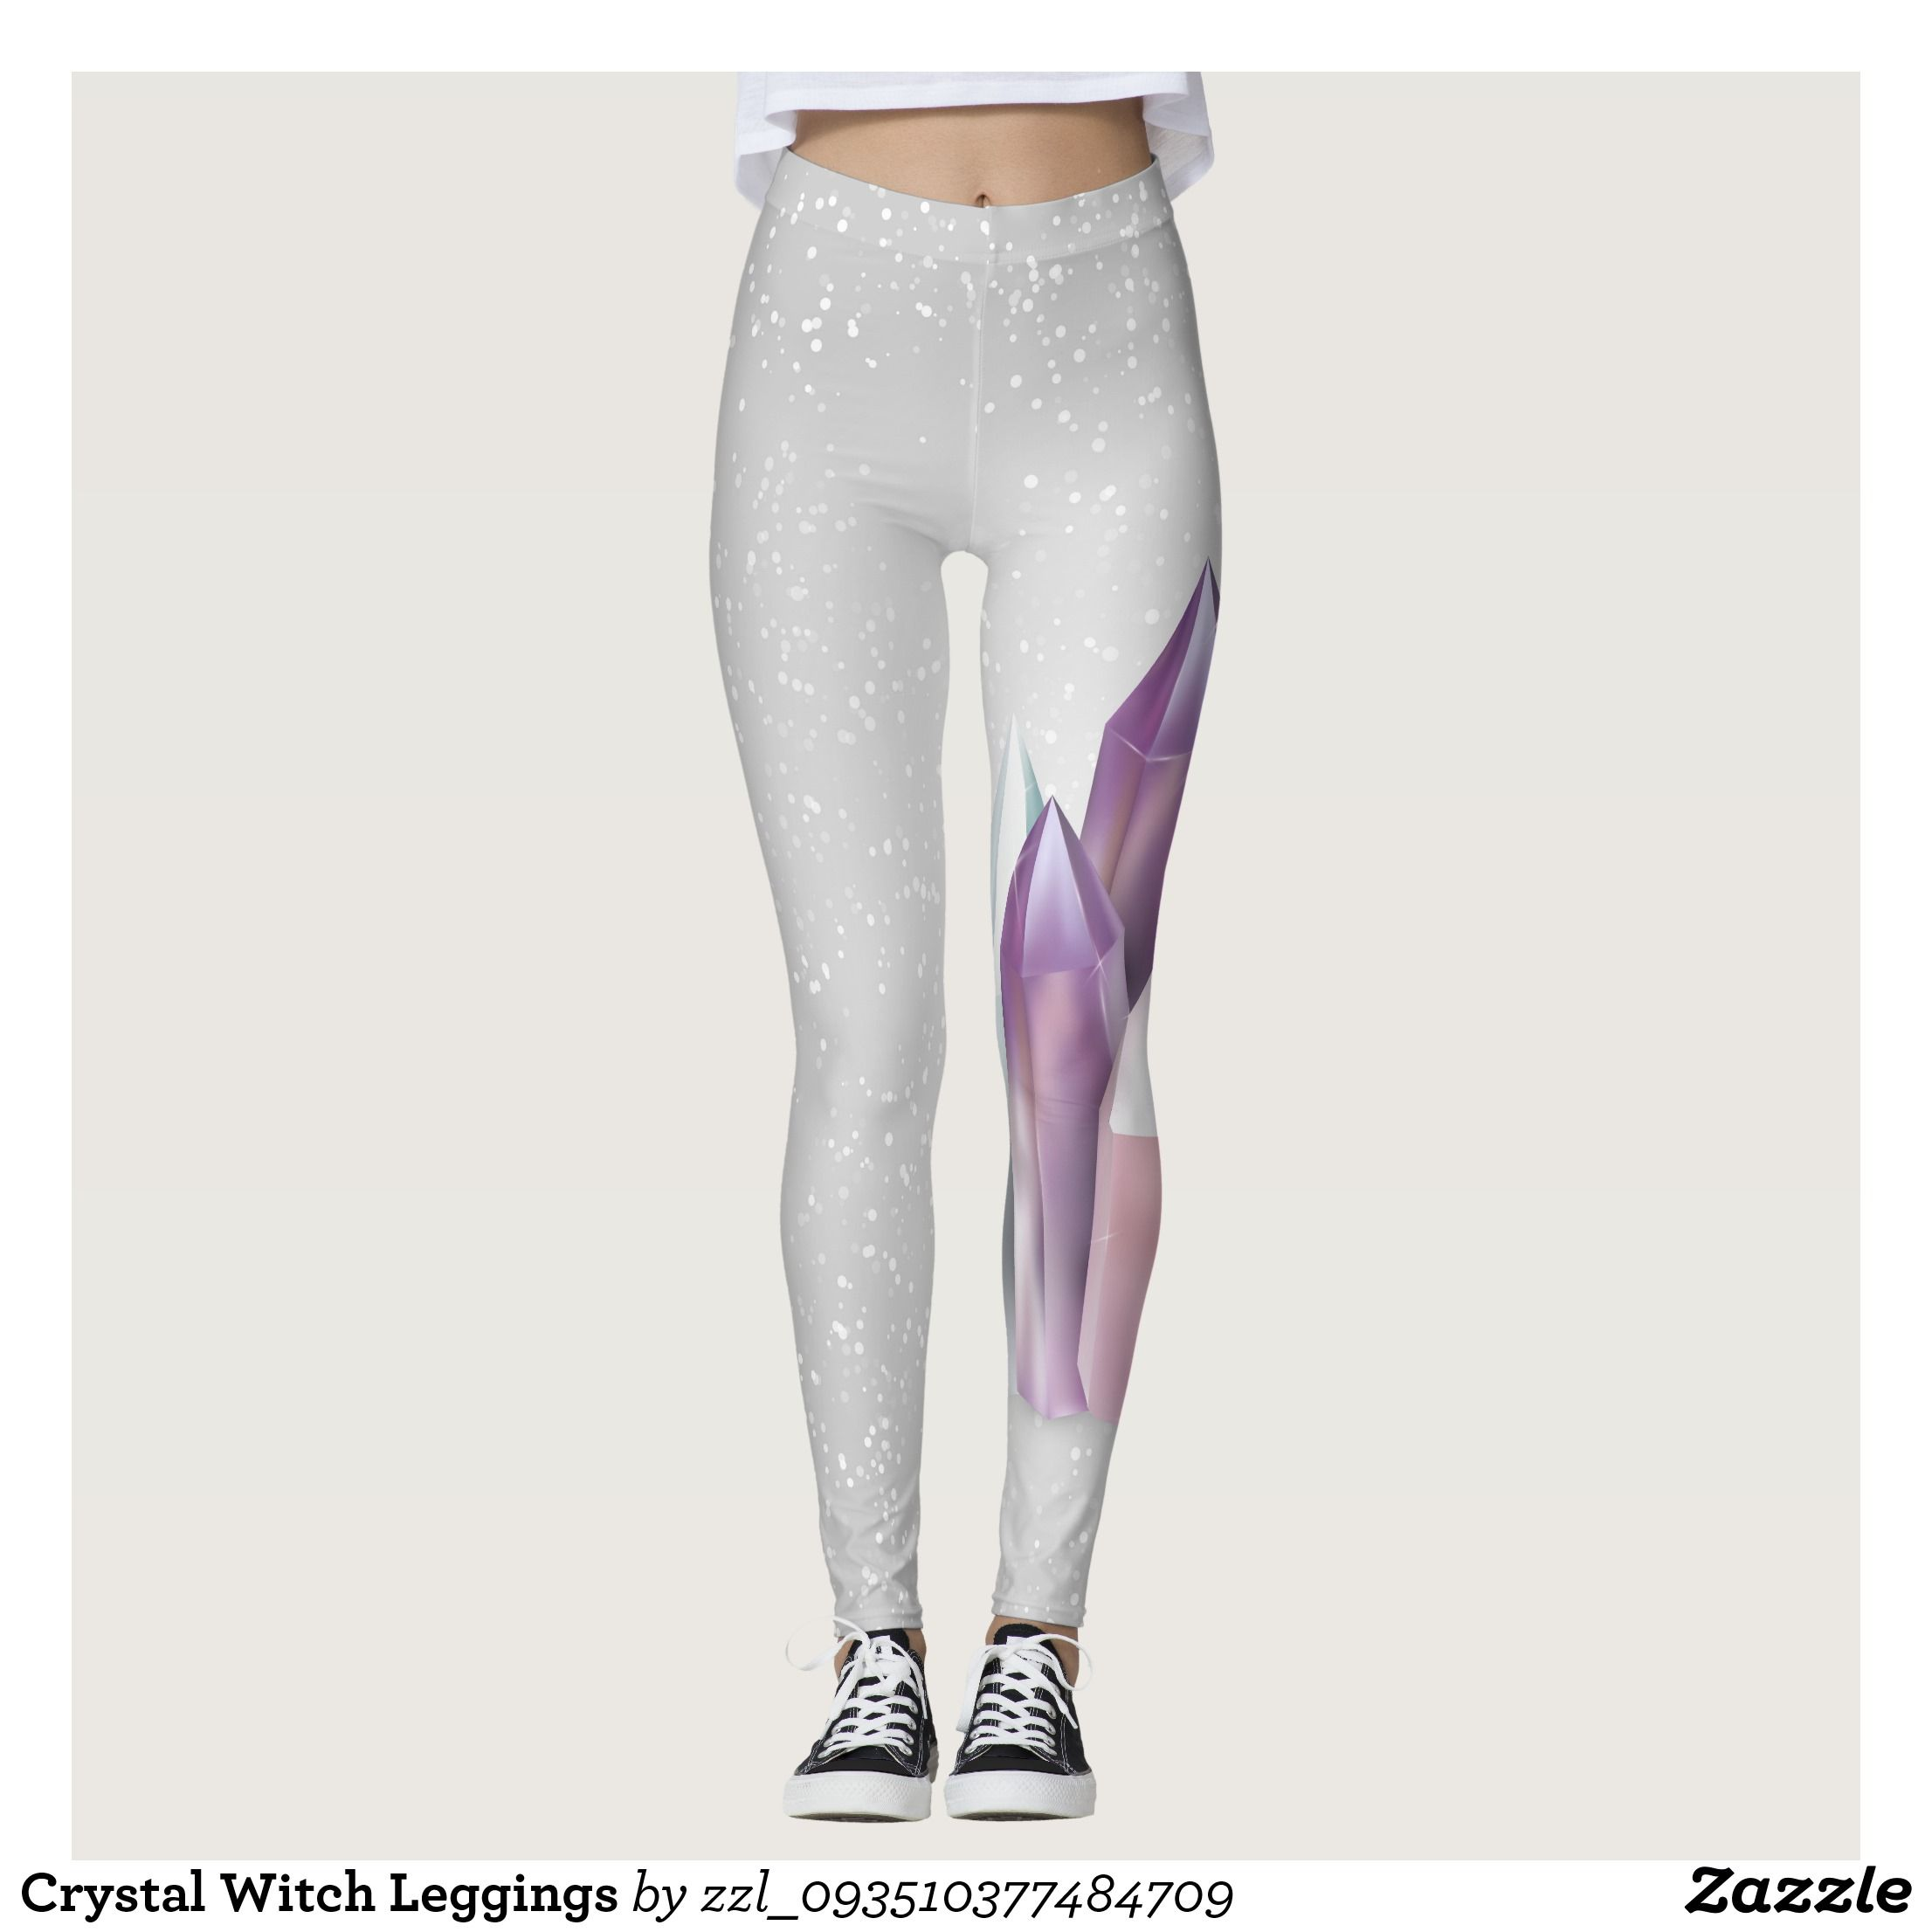 e51762ff08ea5 Crystal Witch Leggings : Beautiful #Yoga Pants - #Exercise Leggings and  #Running Tights - Health and Training Inspiration - Clothing for  #Fitspiration and ...